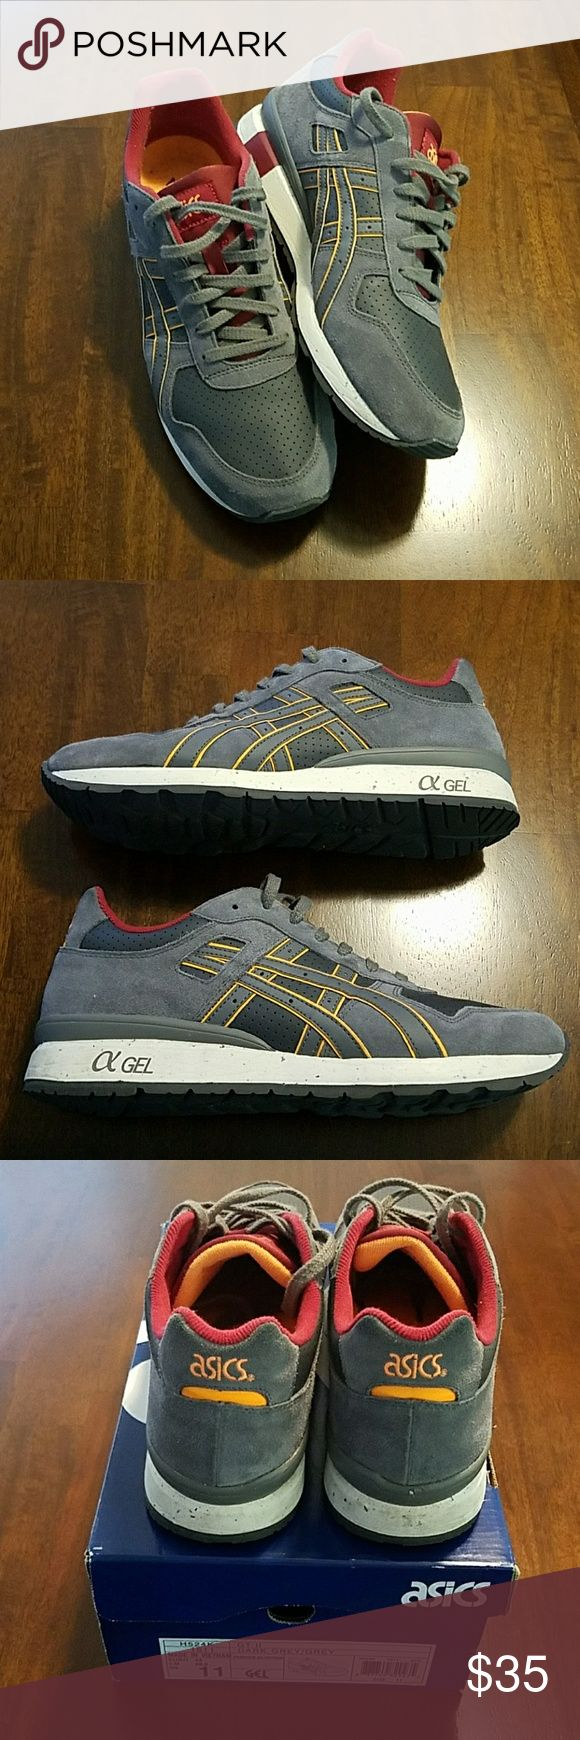 Asics GT II shoes Asics GT - II shoes. Great casual fashion shoes very lightly worn. Color is gray with accents of maroon and light orange. Only blemish is in the last picture with small Nick in right back midsole. Comes with original box. Asics Shoes Sneakers